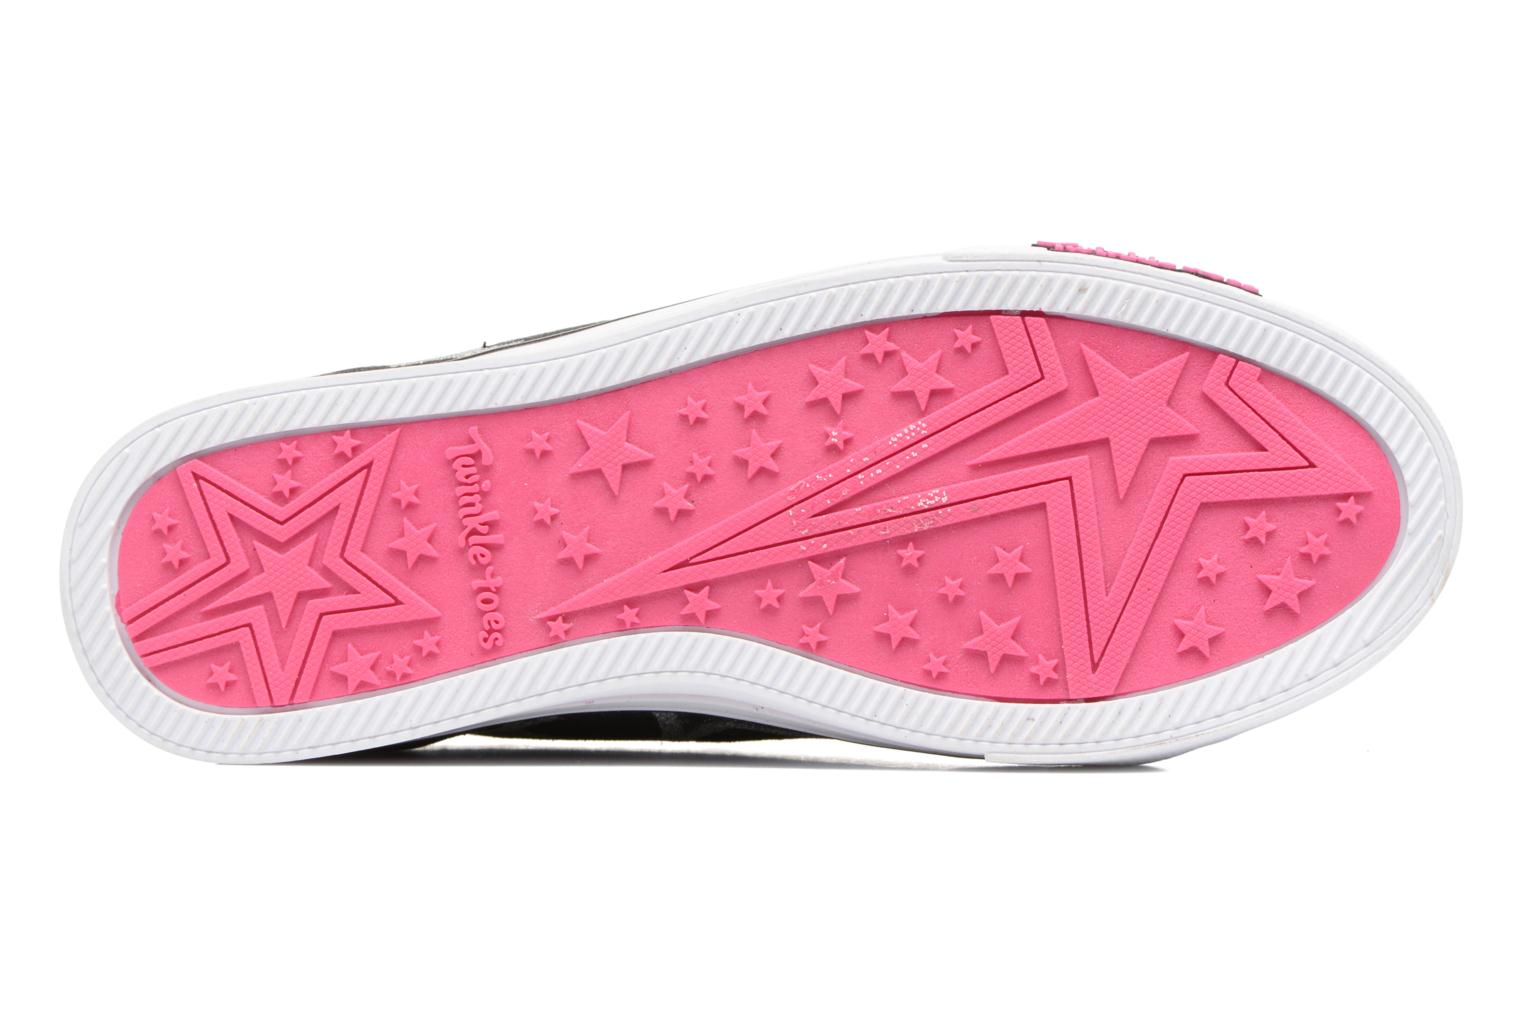 Baskets Skechers Sparkle Glitz Heartsy Glam Multicolore vue haut